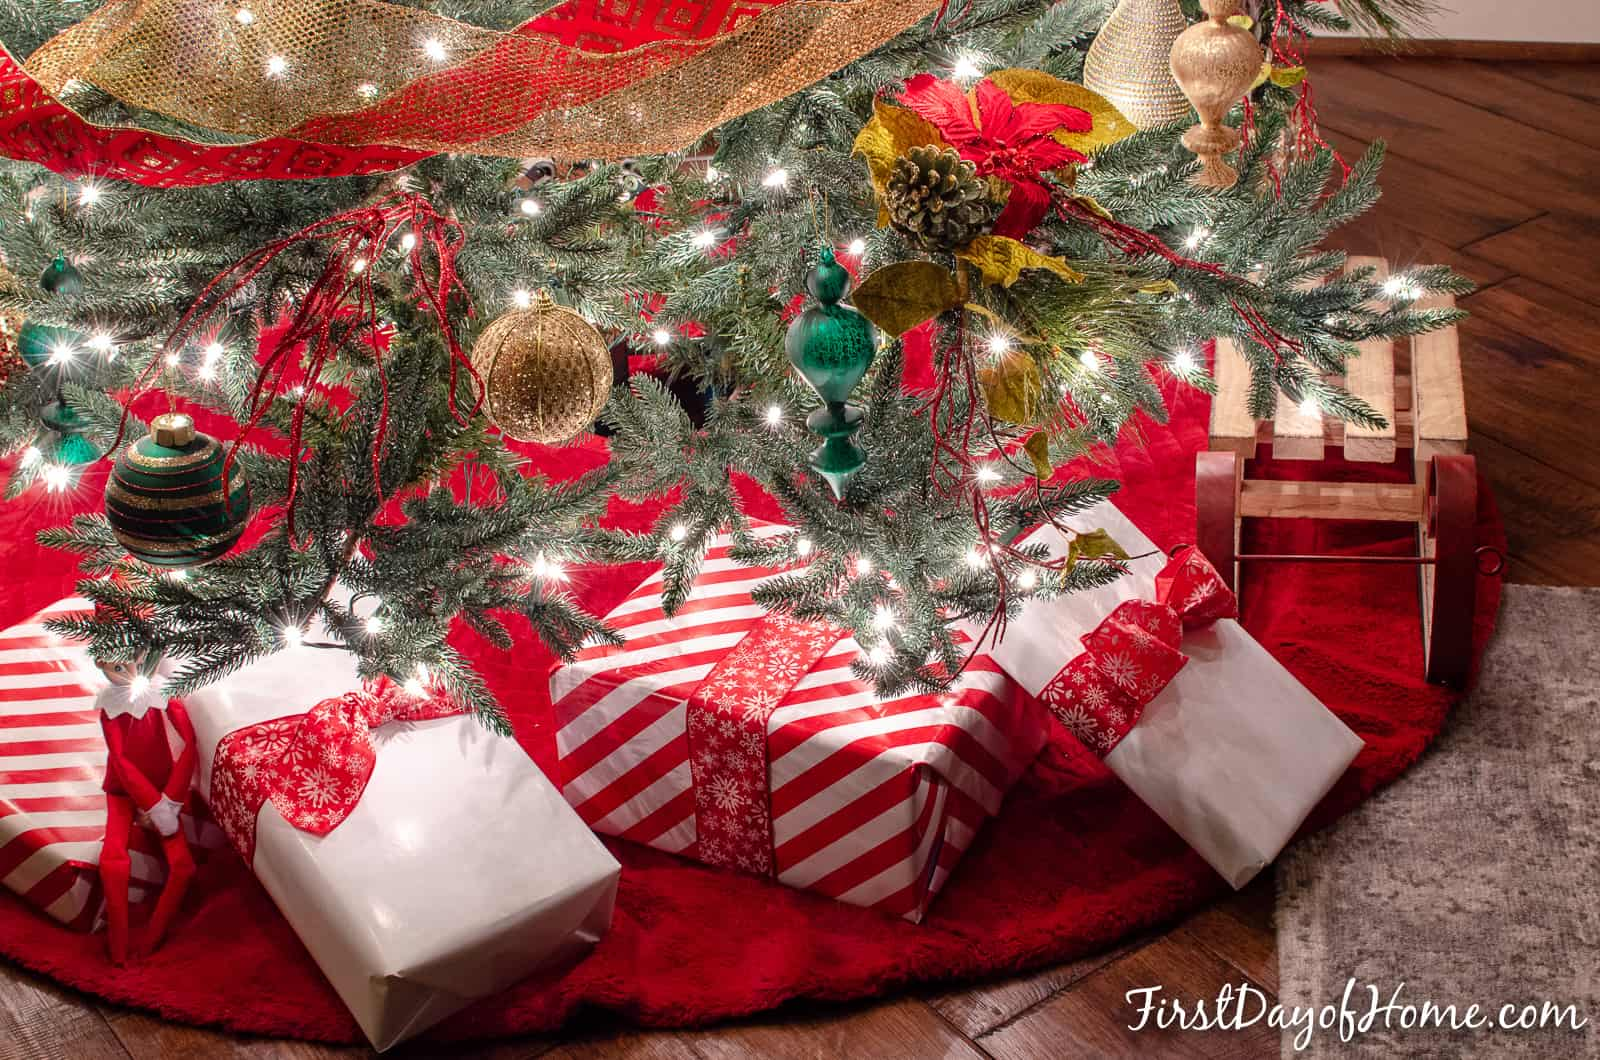 Red and gold decorated Christmas tree with white presents underneath